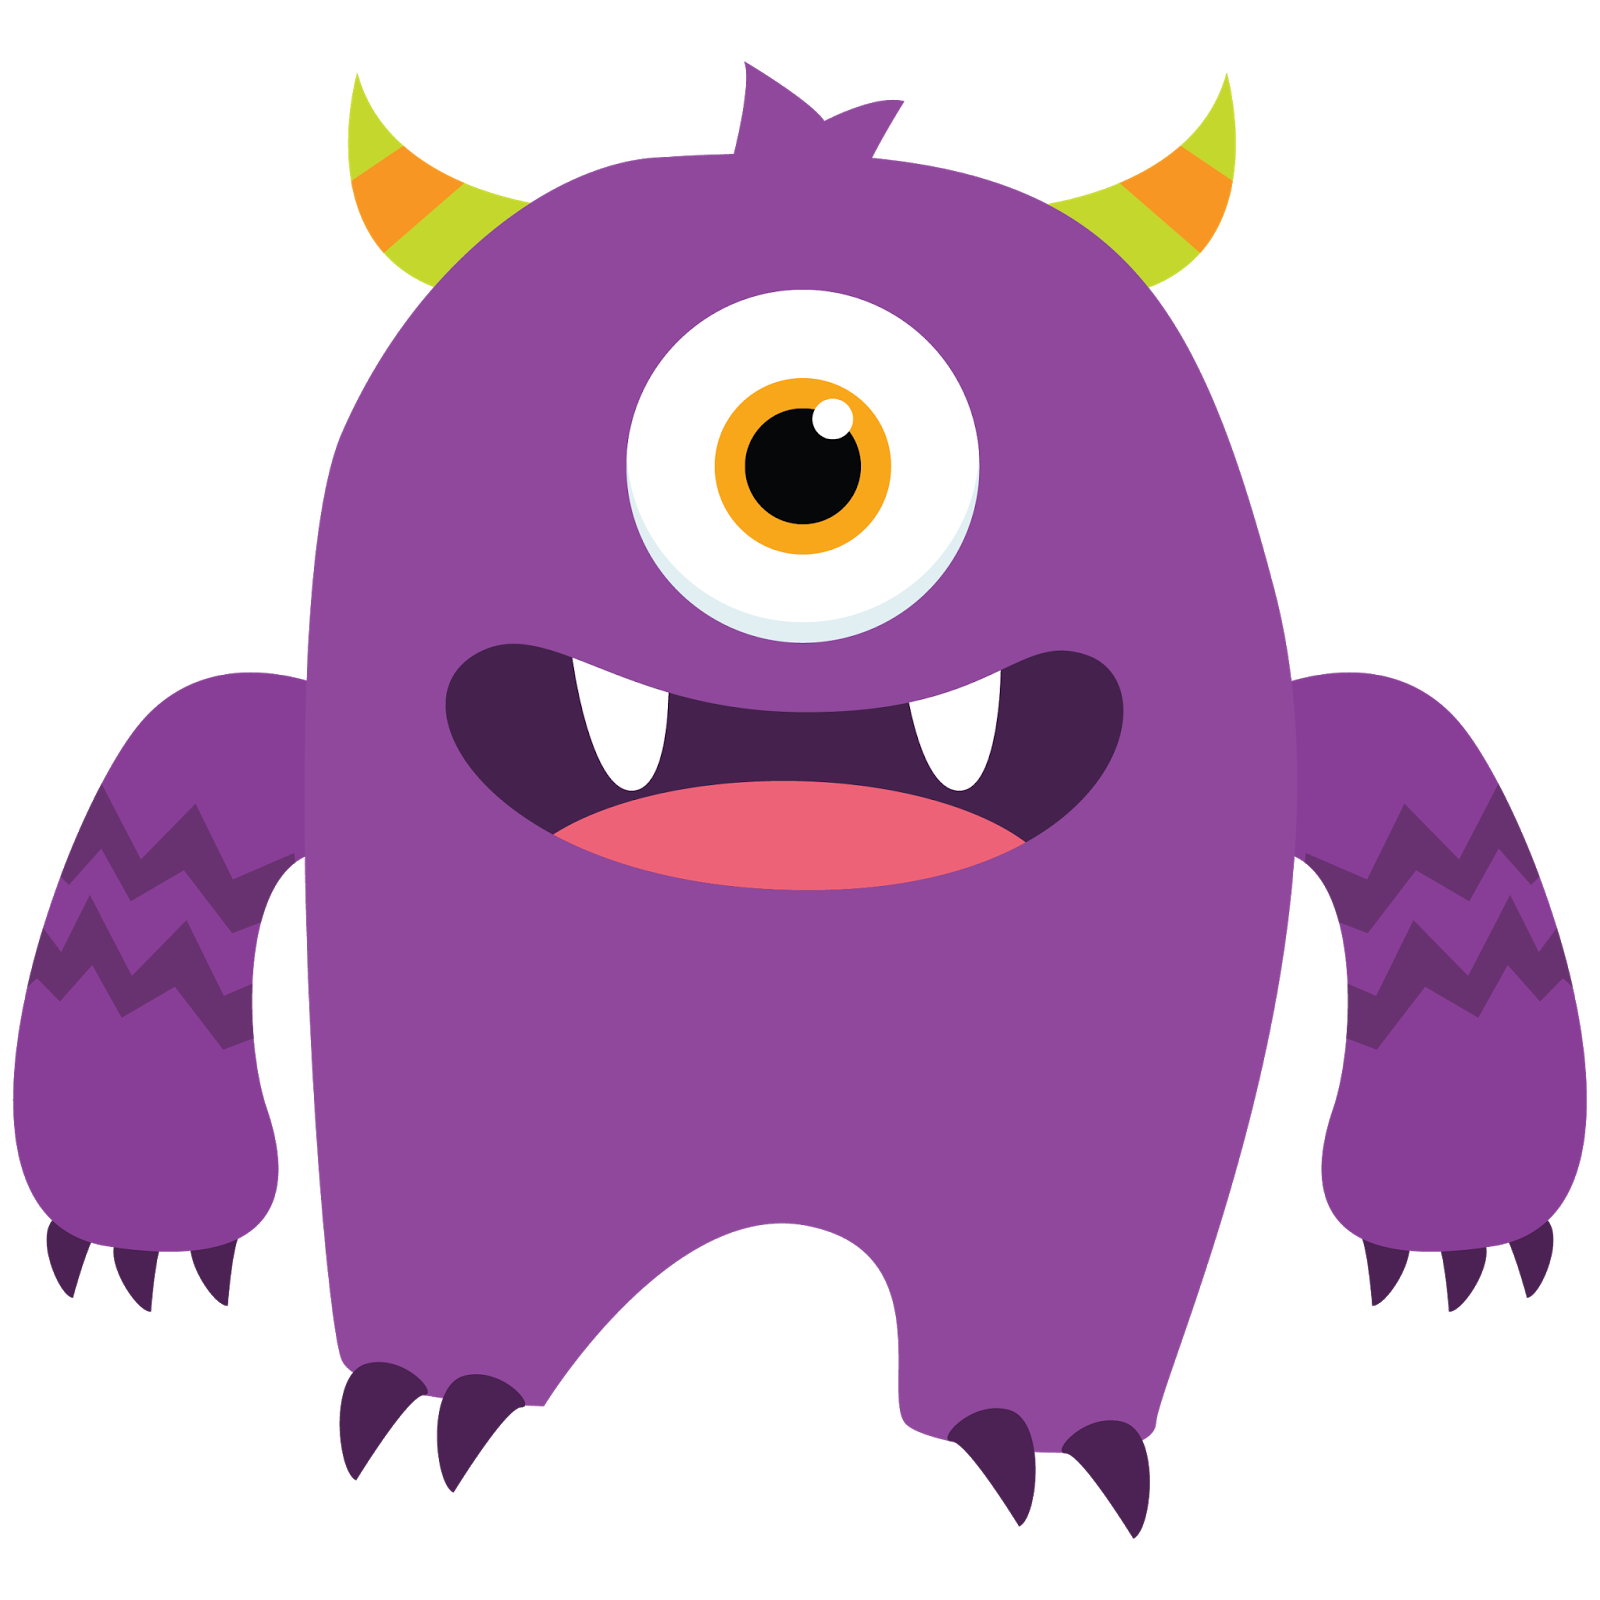 monster clipart free clipart images monster cute pinterest rh pinterest com monster clipart images monster clipart